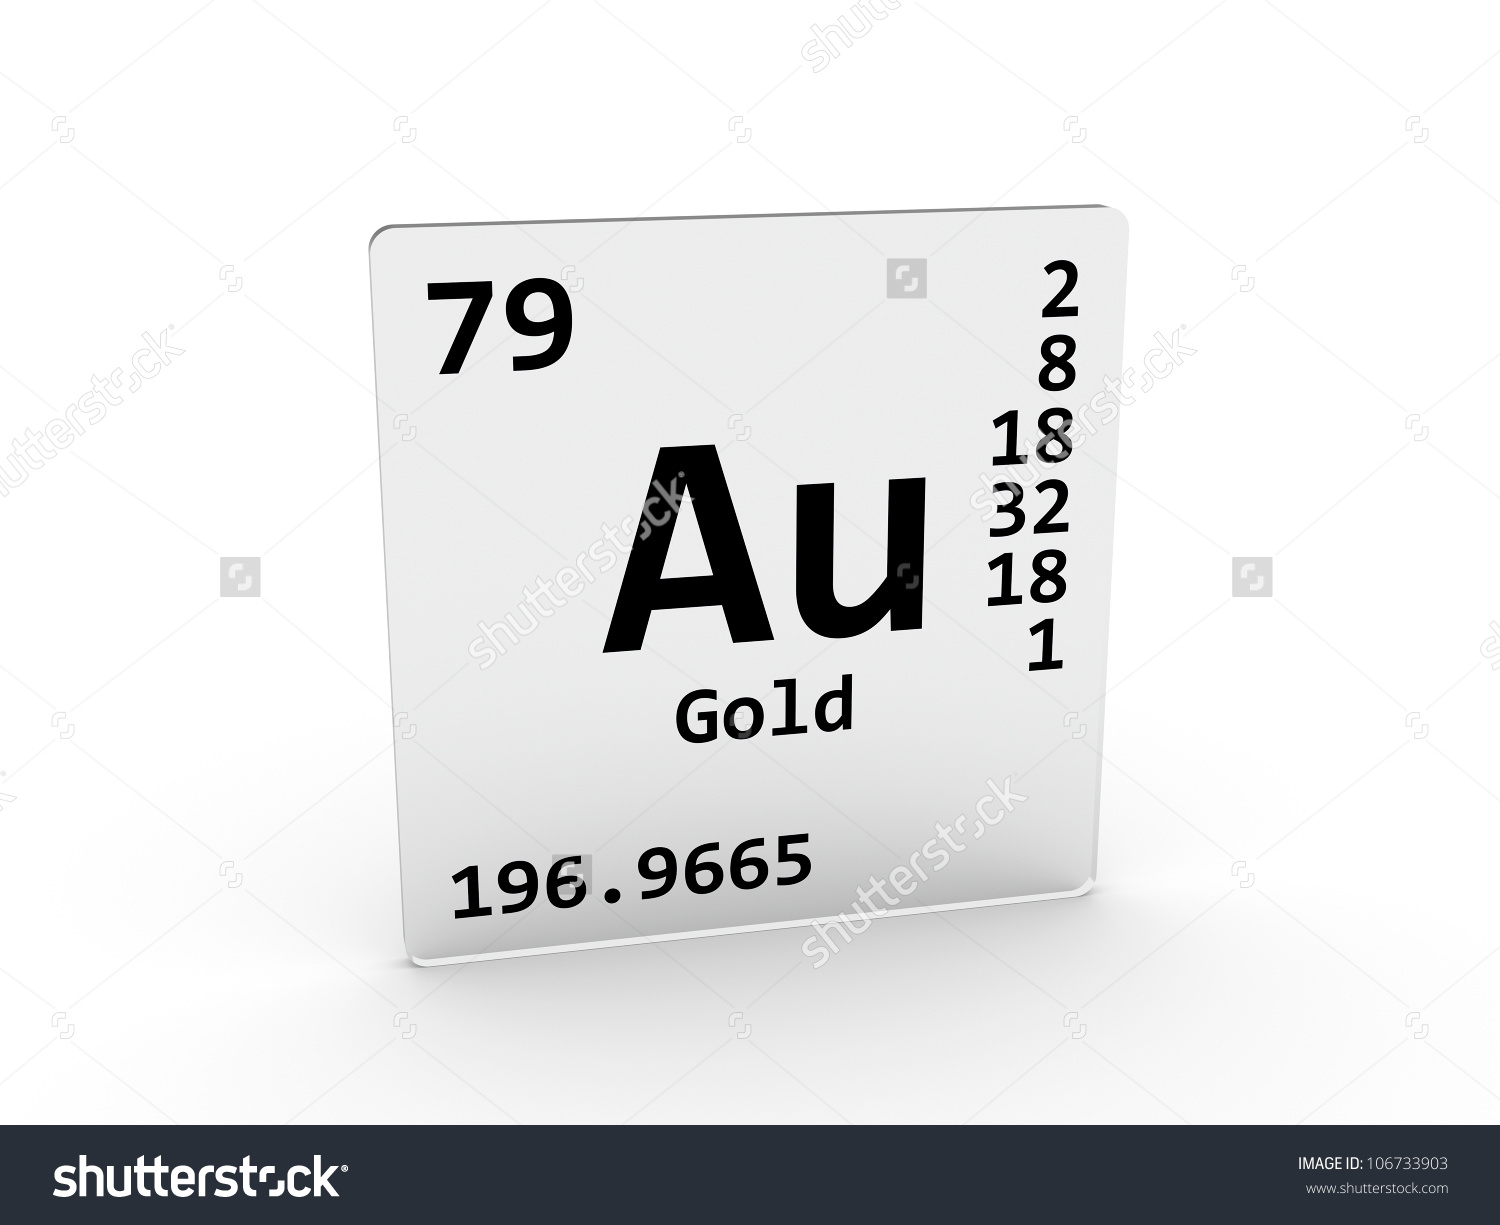 Gold periodic table symbol clipart clipground gold symbol au element periodic table stock illustration 106733903 urtaz Choice Image